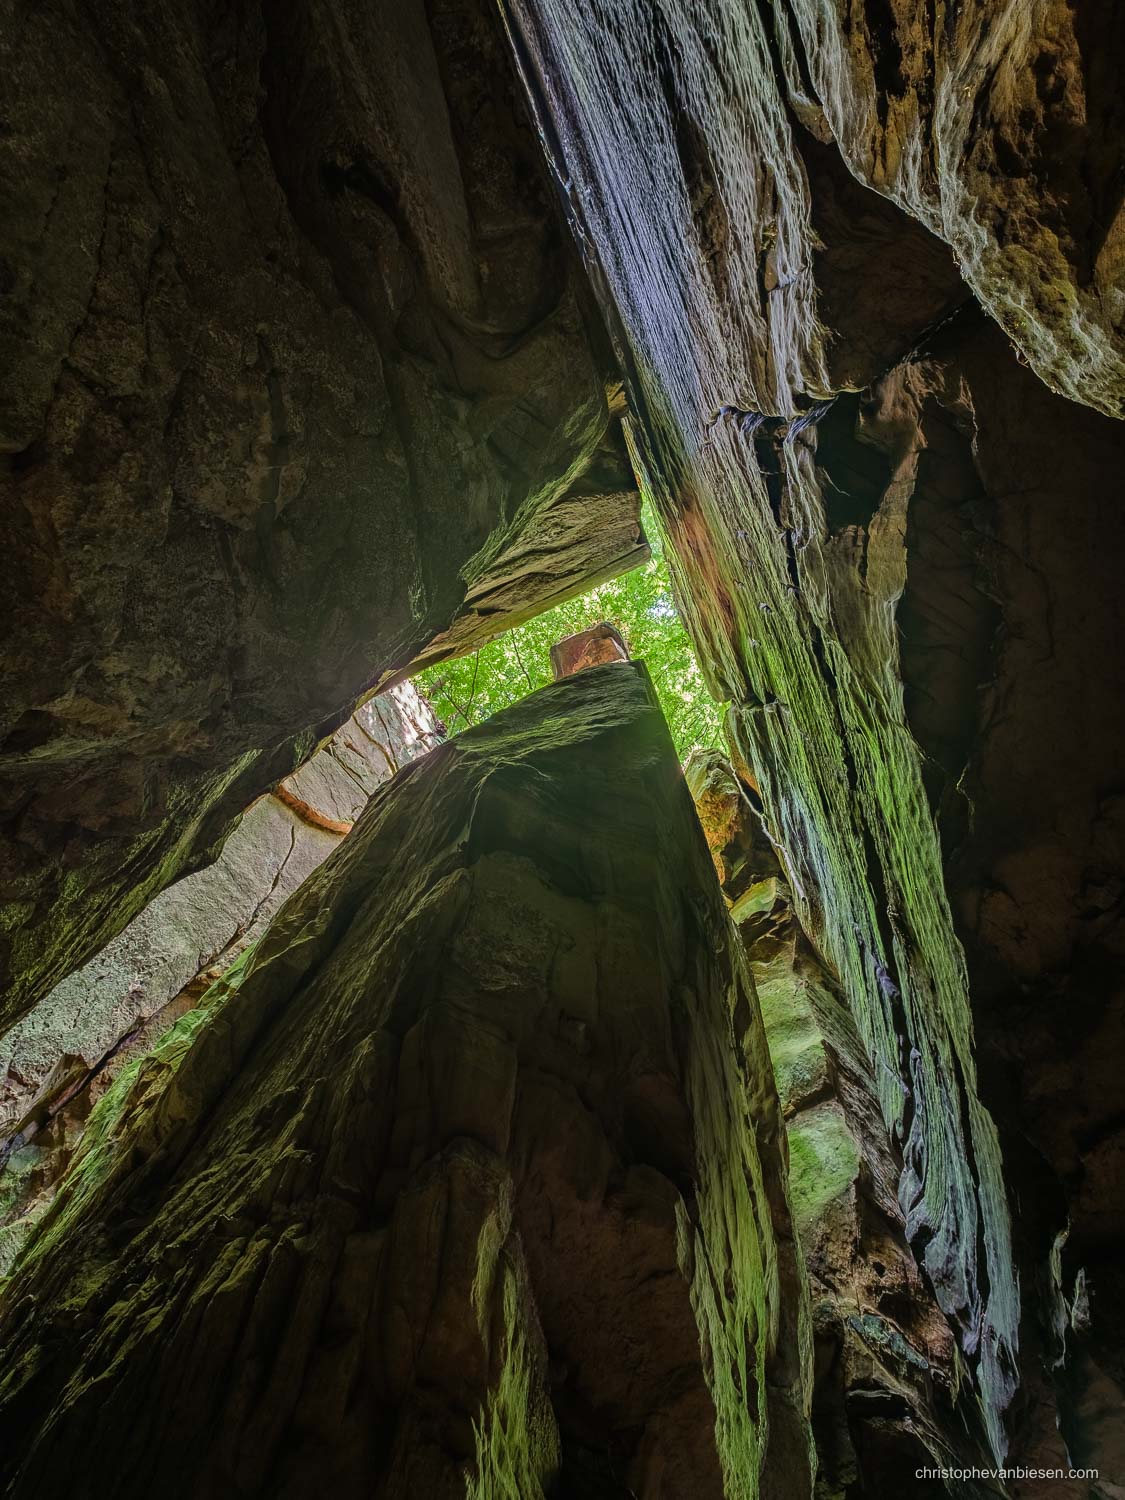 Visit the Mullerthal - Luxembourg - Looking up inside the Goldfralay caves in Luxembourg's Mullerthal region - Under the Canopy